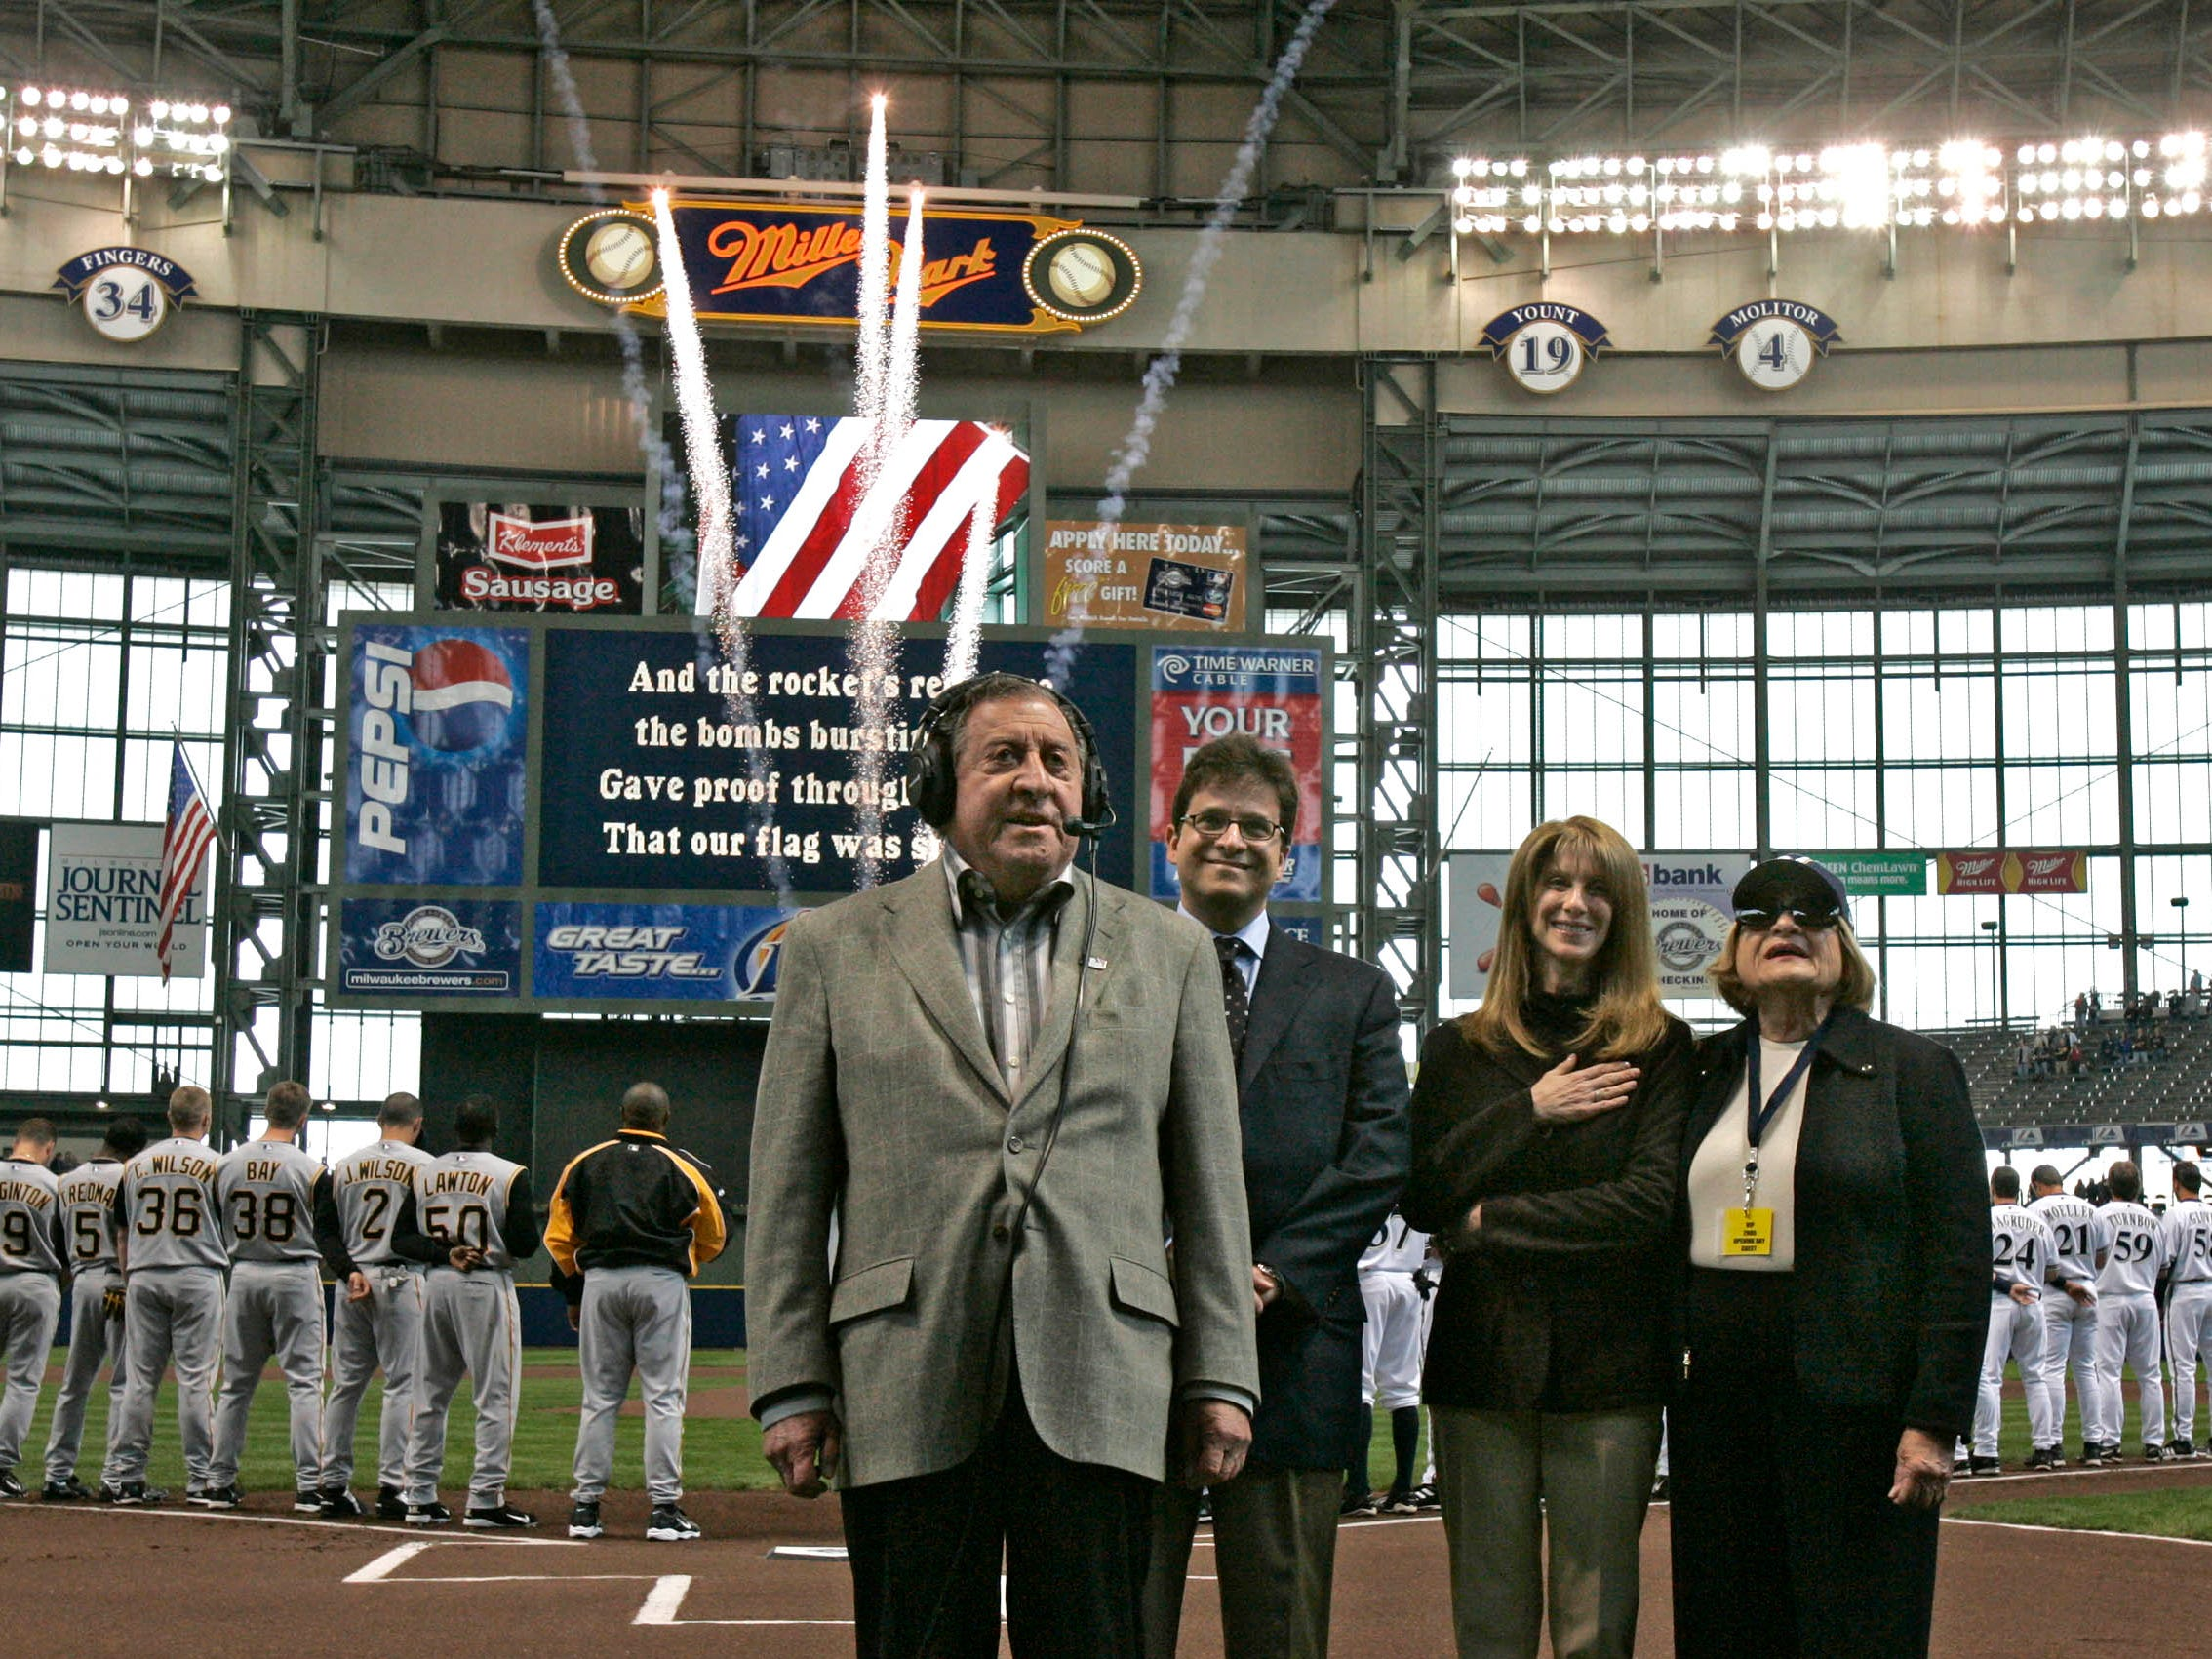 Joseph Attanasio sings the national anthem at Miller Park during the home opener Monday, April 11, 2005, with new Brewers owner and son, Mark; Mark's wife, Debbie; and his wife, Connie, by his side.